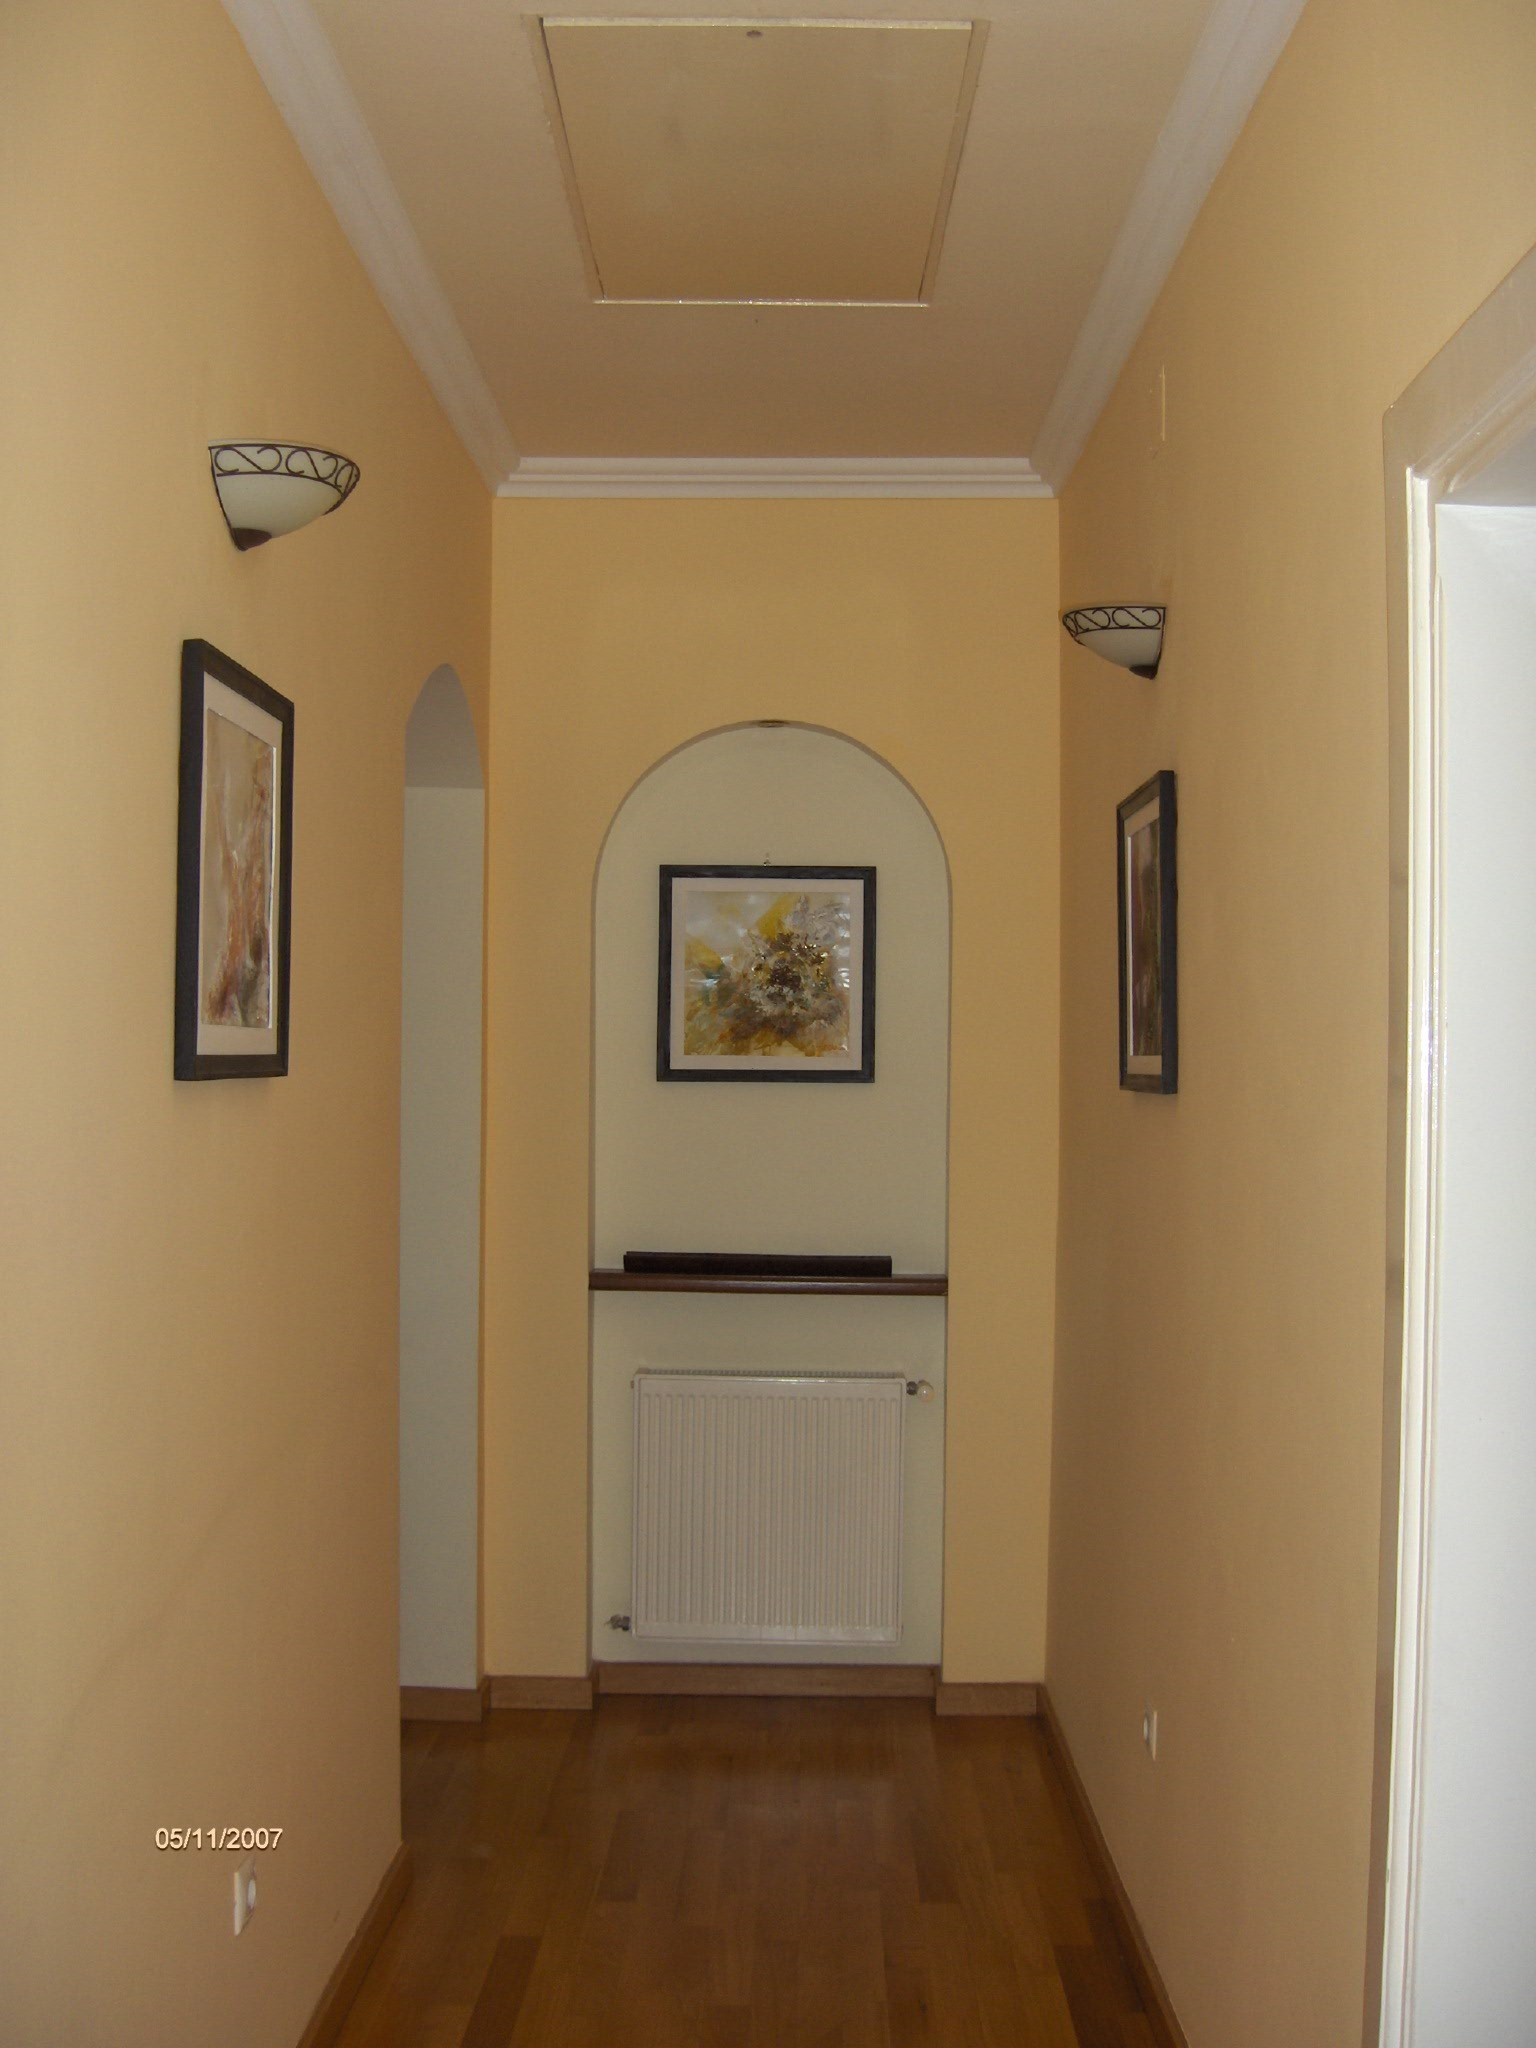 charming-house-rent-timisoara-center-5mn-iulius-mall-5-rooms-fitted-kitchen-terrace-garden-garage-cella-d7a21c1a6813b2564cfd04736f30d6bc